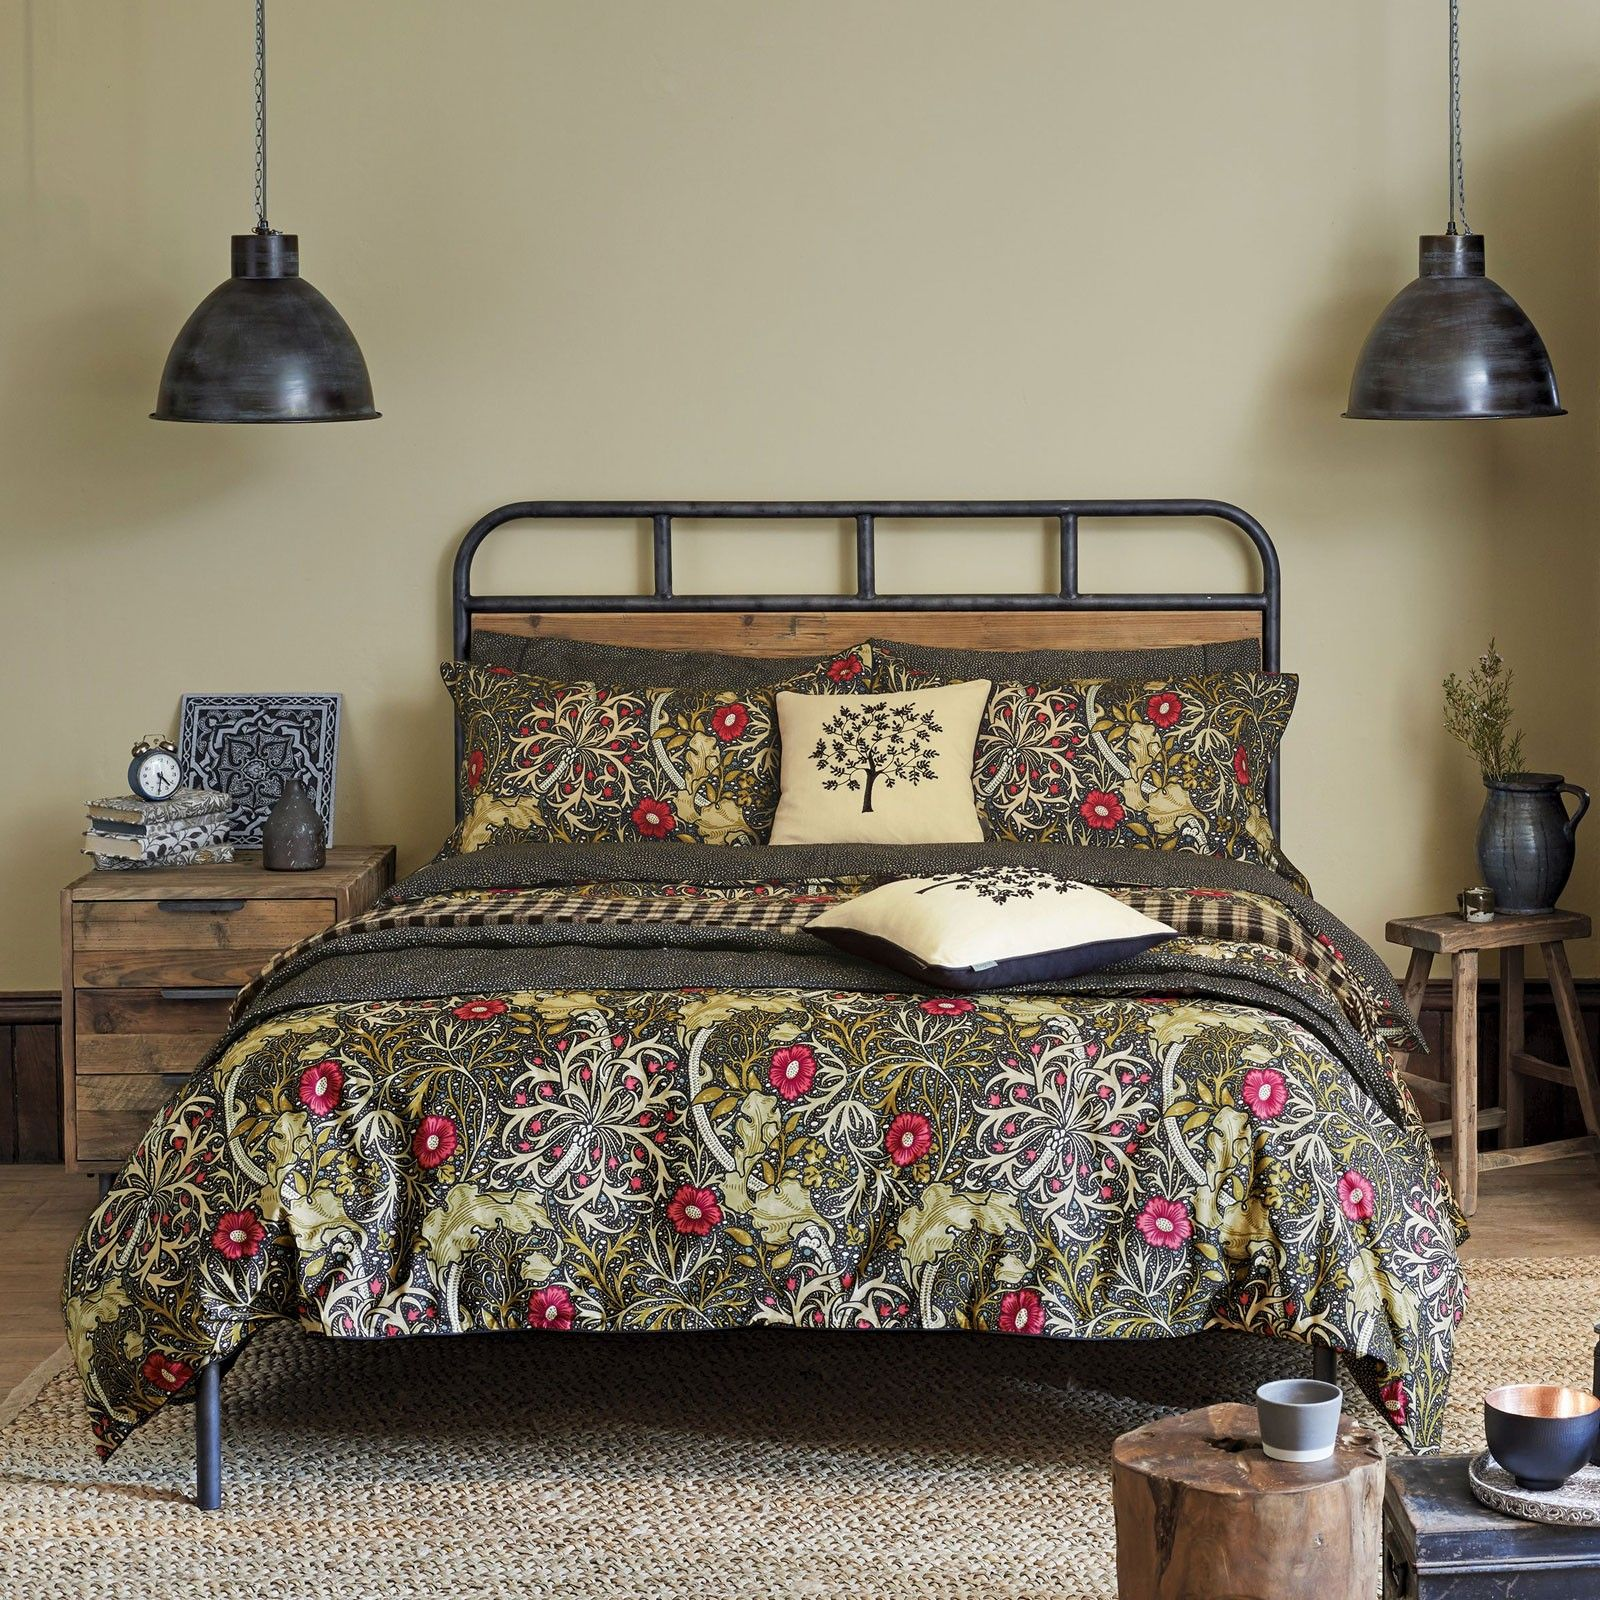 Bedding Bed linens luxury, Cool beds, Luxury bedding